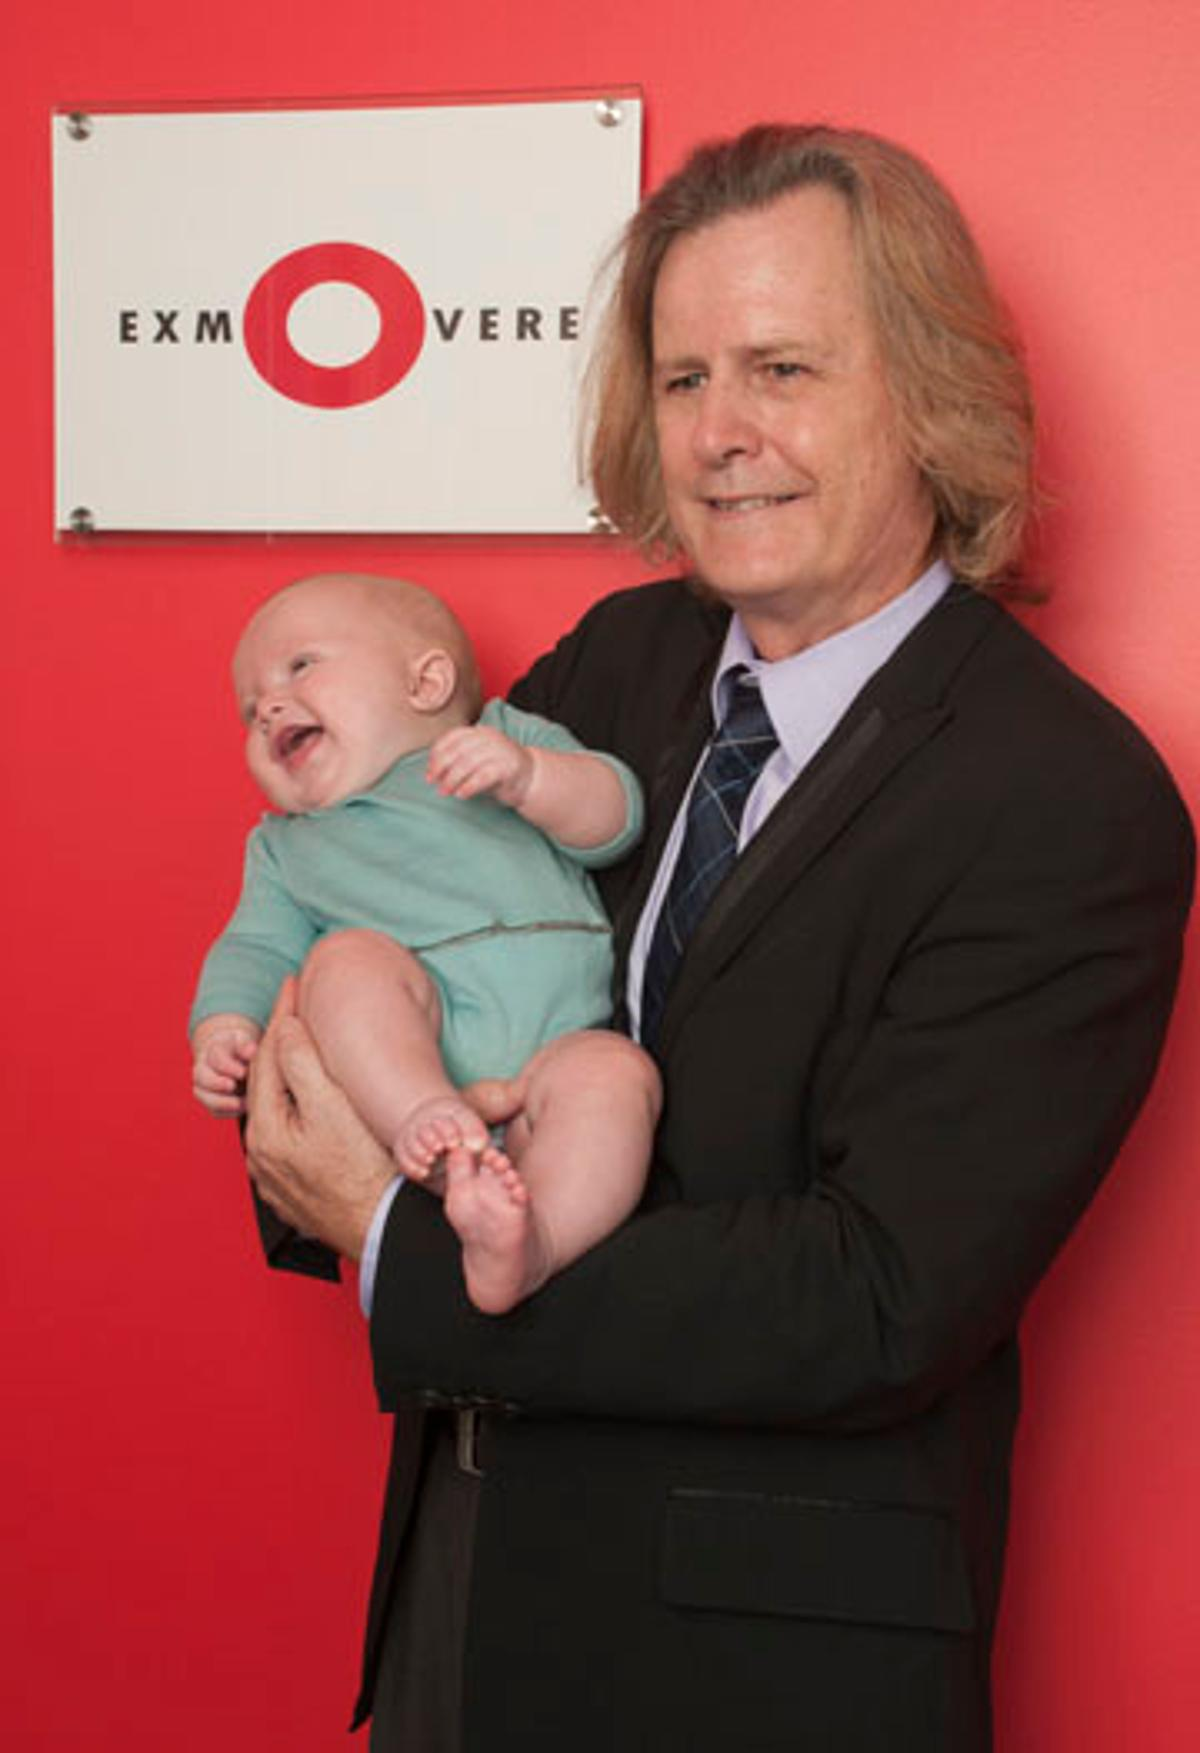 Cheyenne Crow from Exmovere Holdings with child wearing Exmobaby pajamas(Photo: Liz Roll)